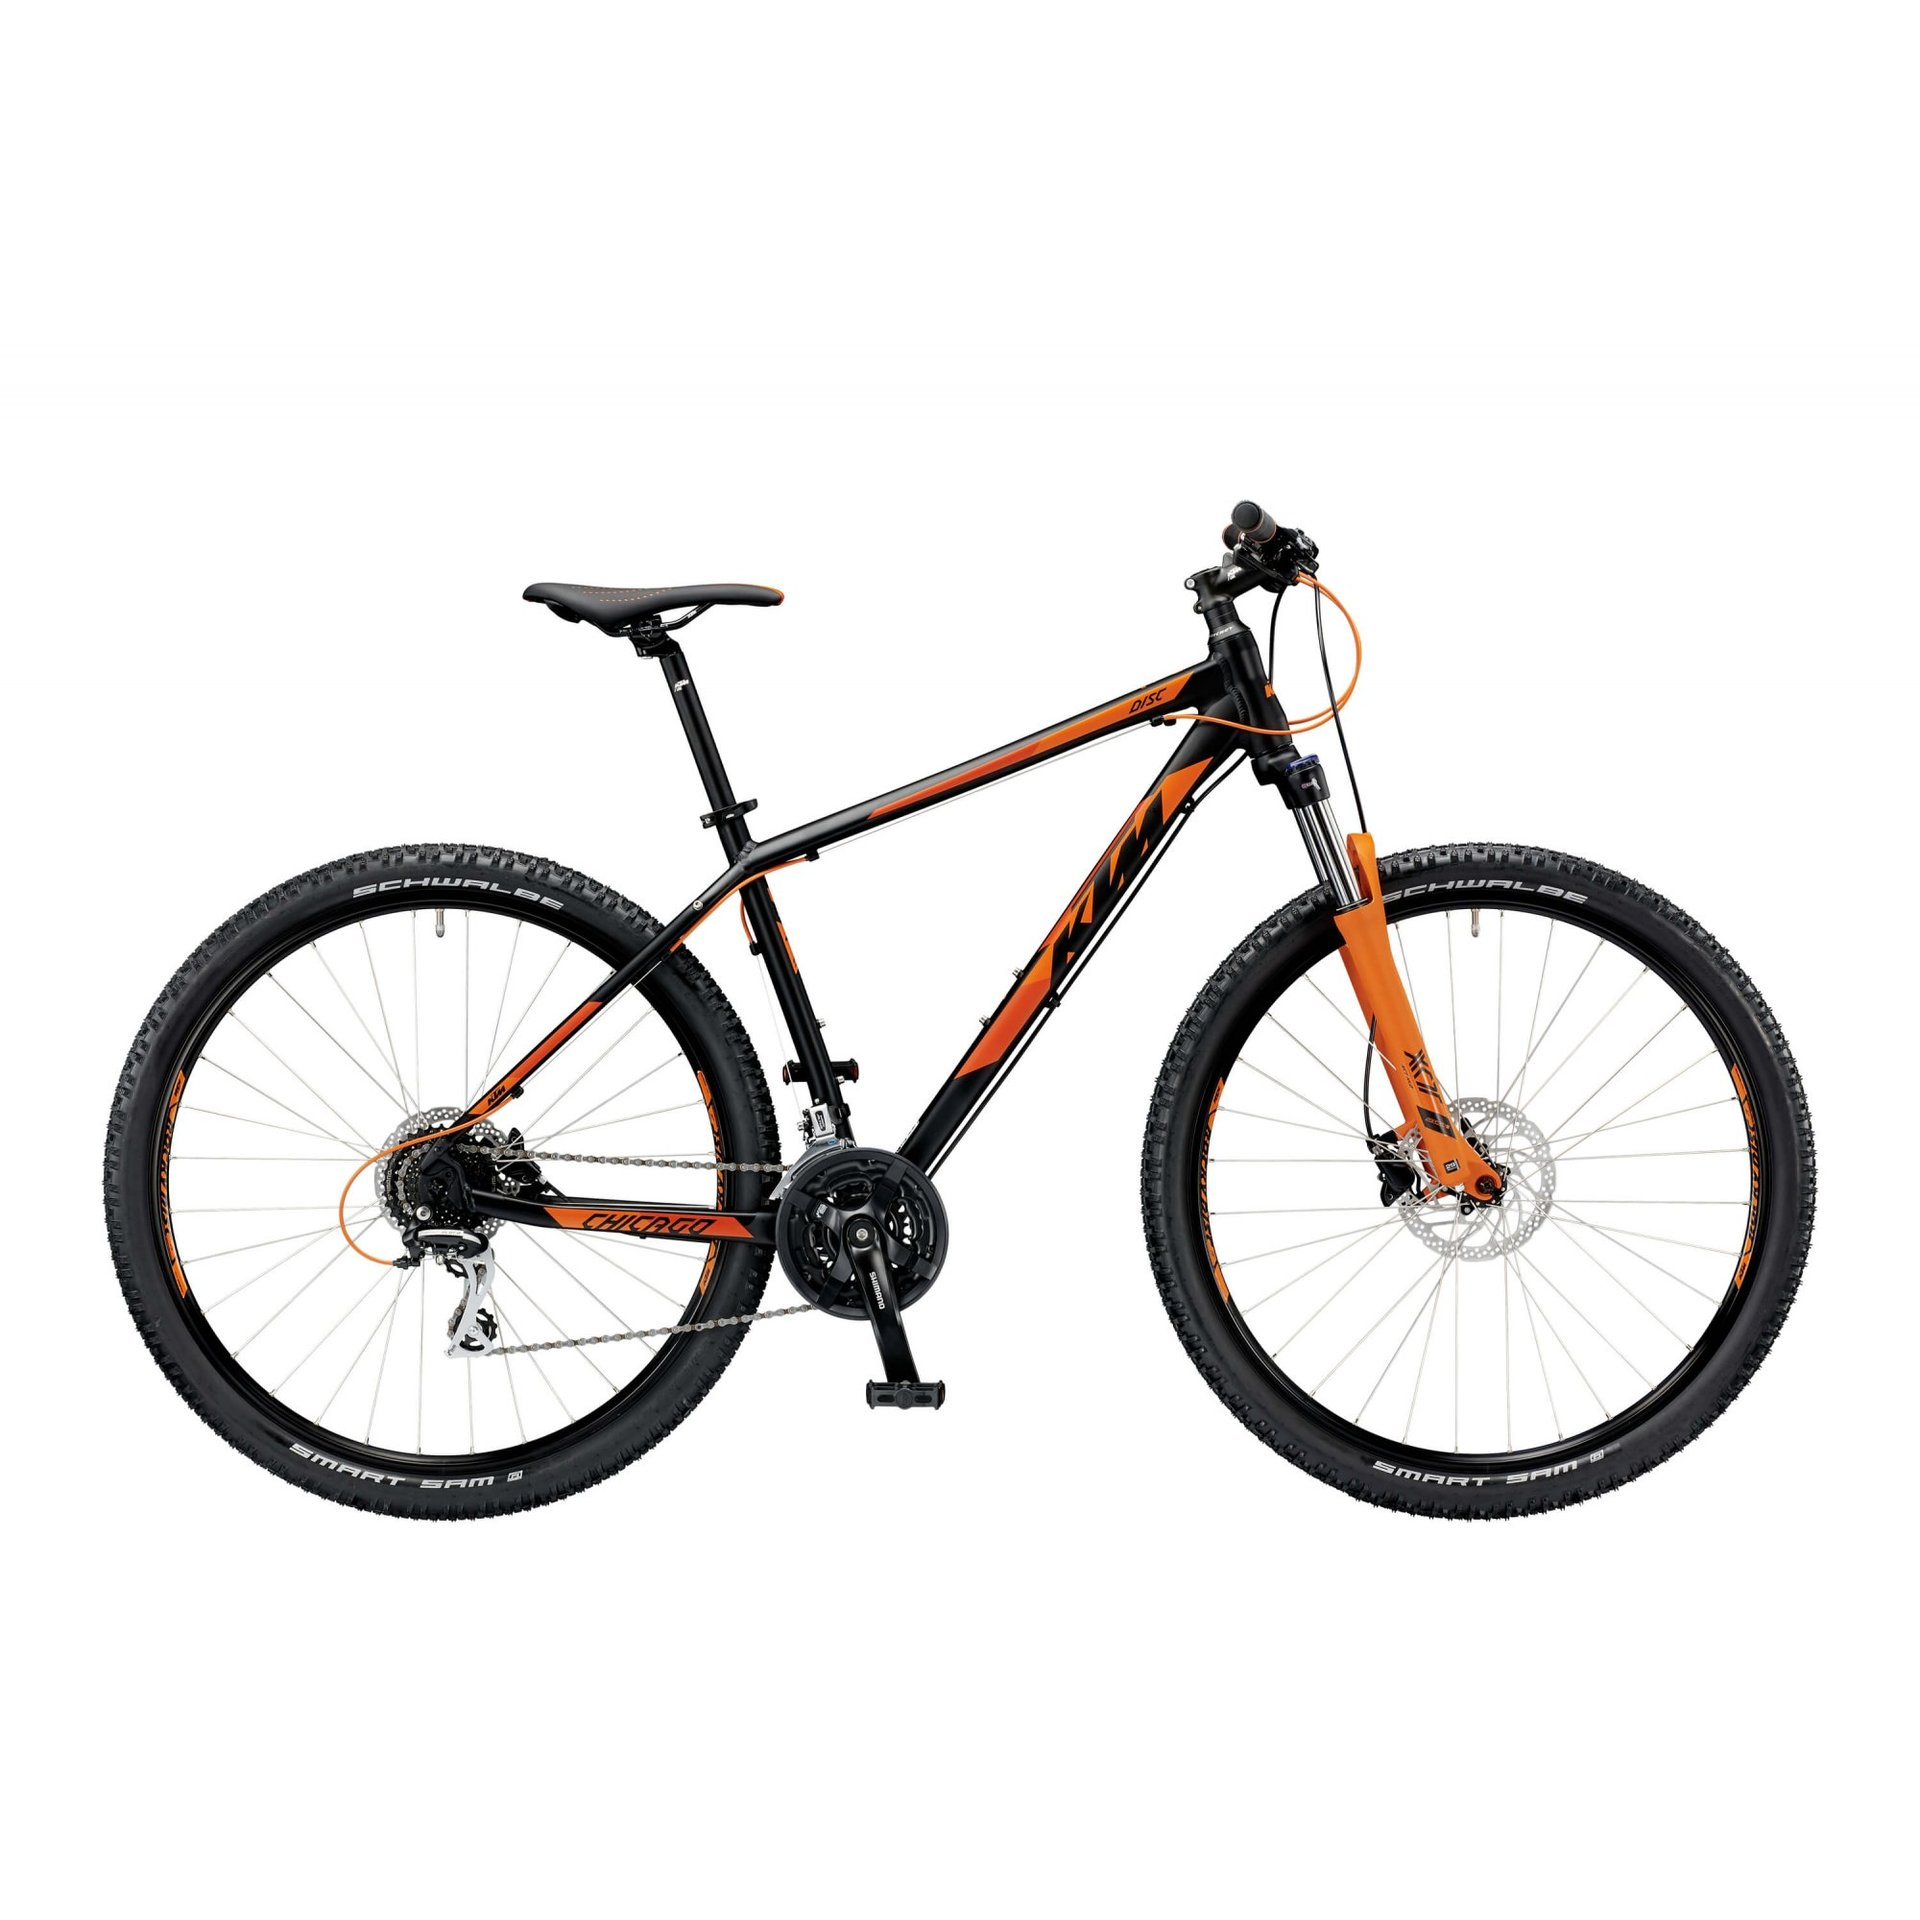 ROWER KTM CHICAGO BLACK|ORANGE